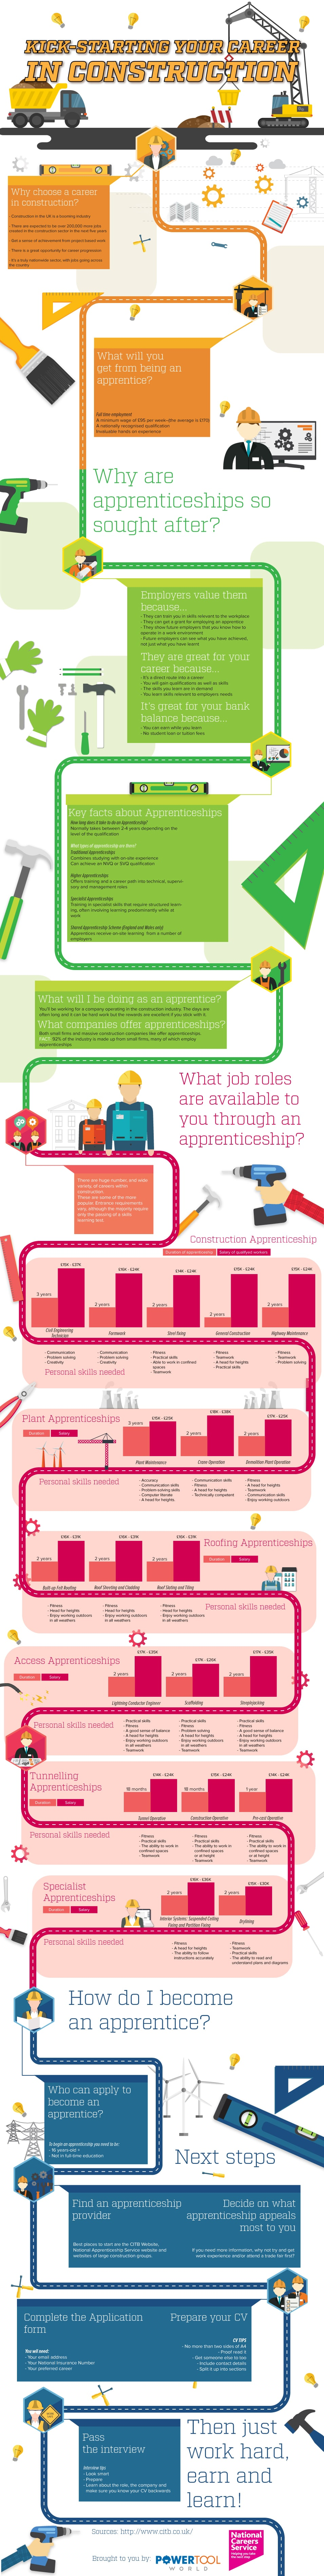 Career in Construction [Infographic]